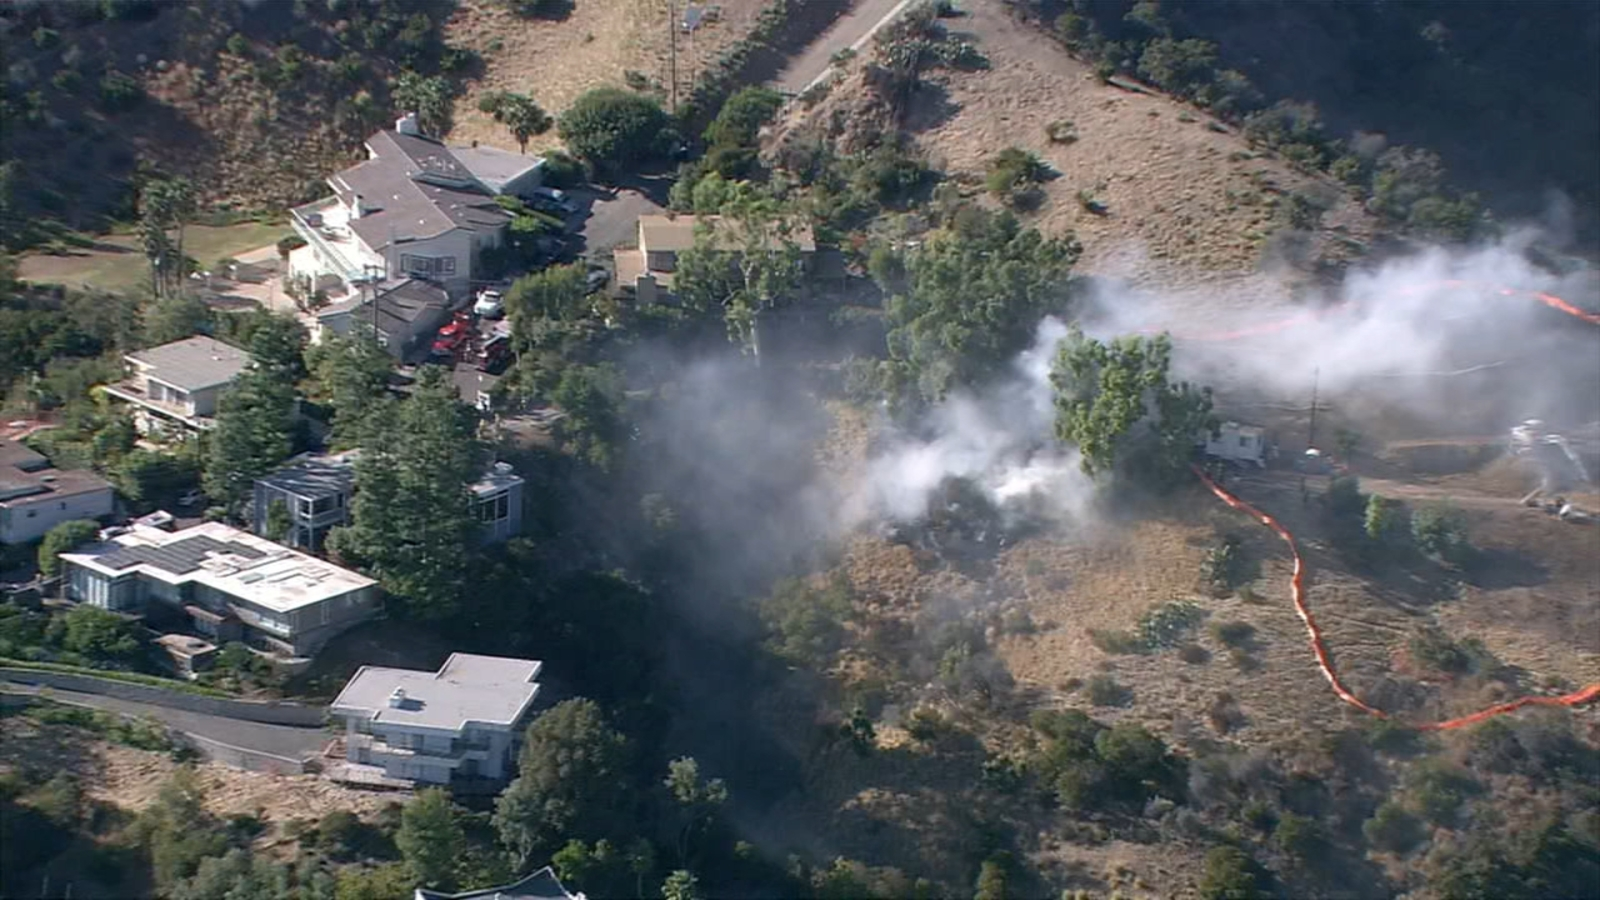 Firefighters battle small brush fire burning near homes in Brentwood